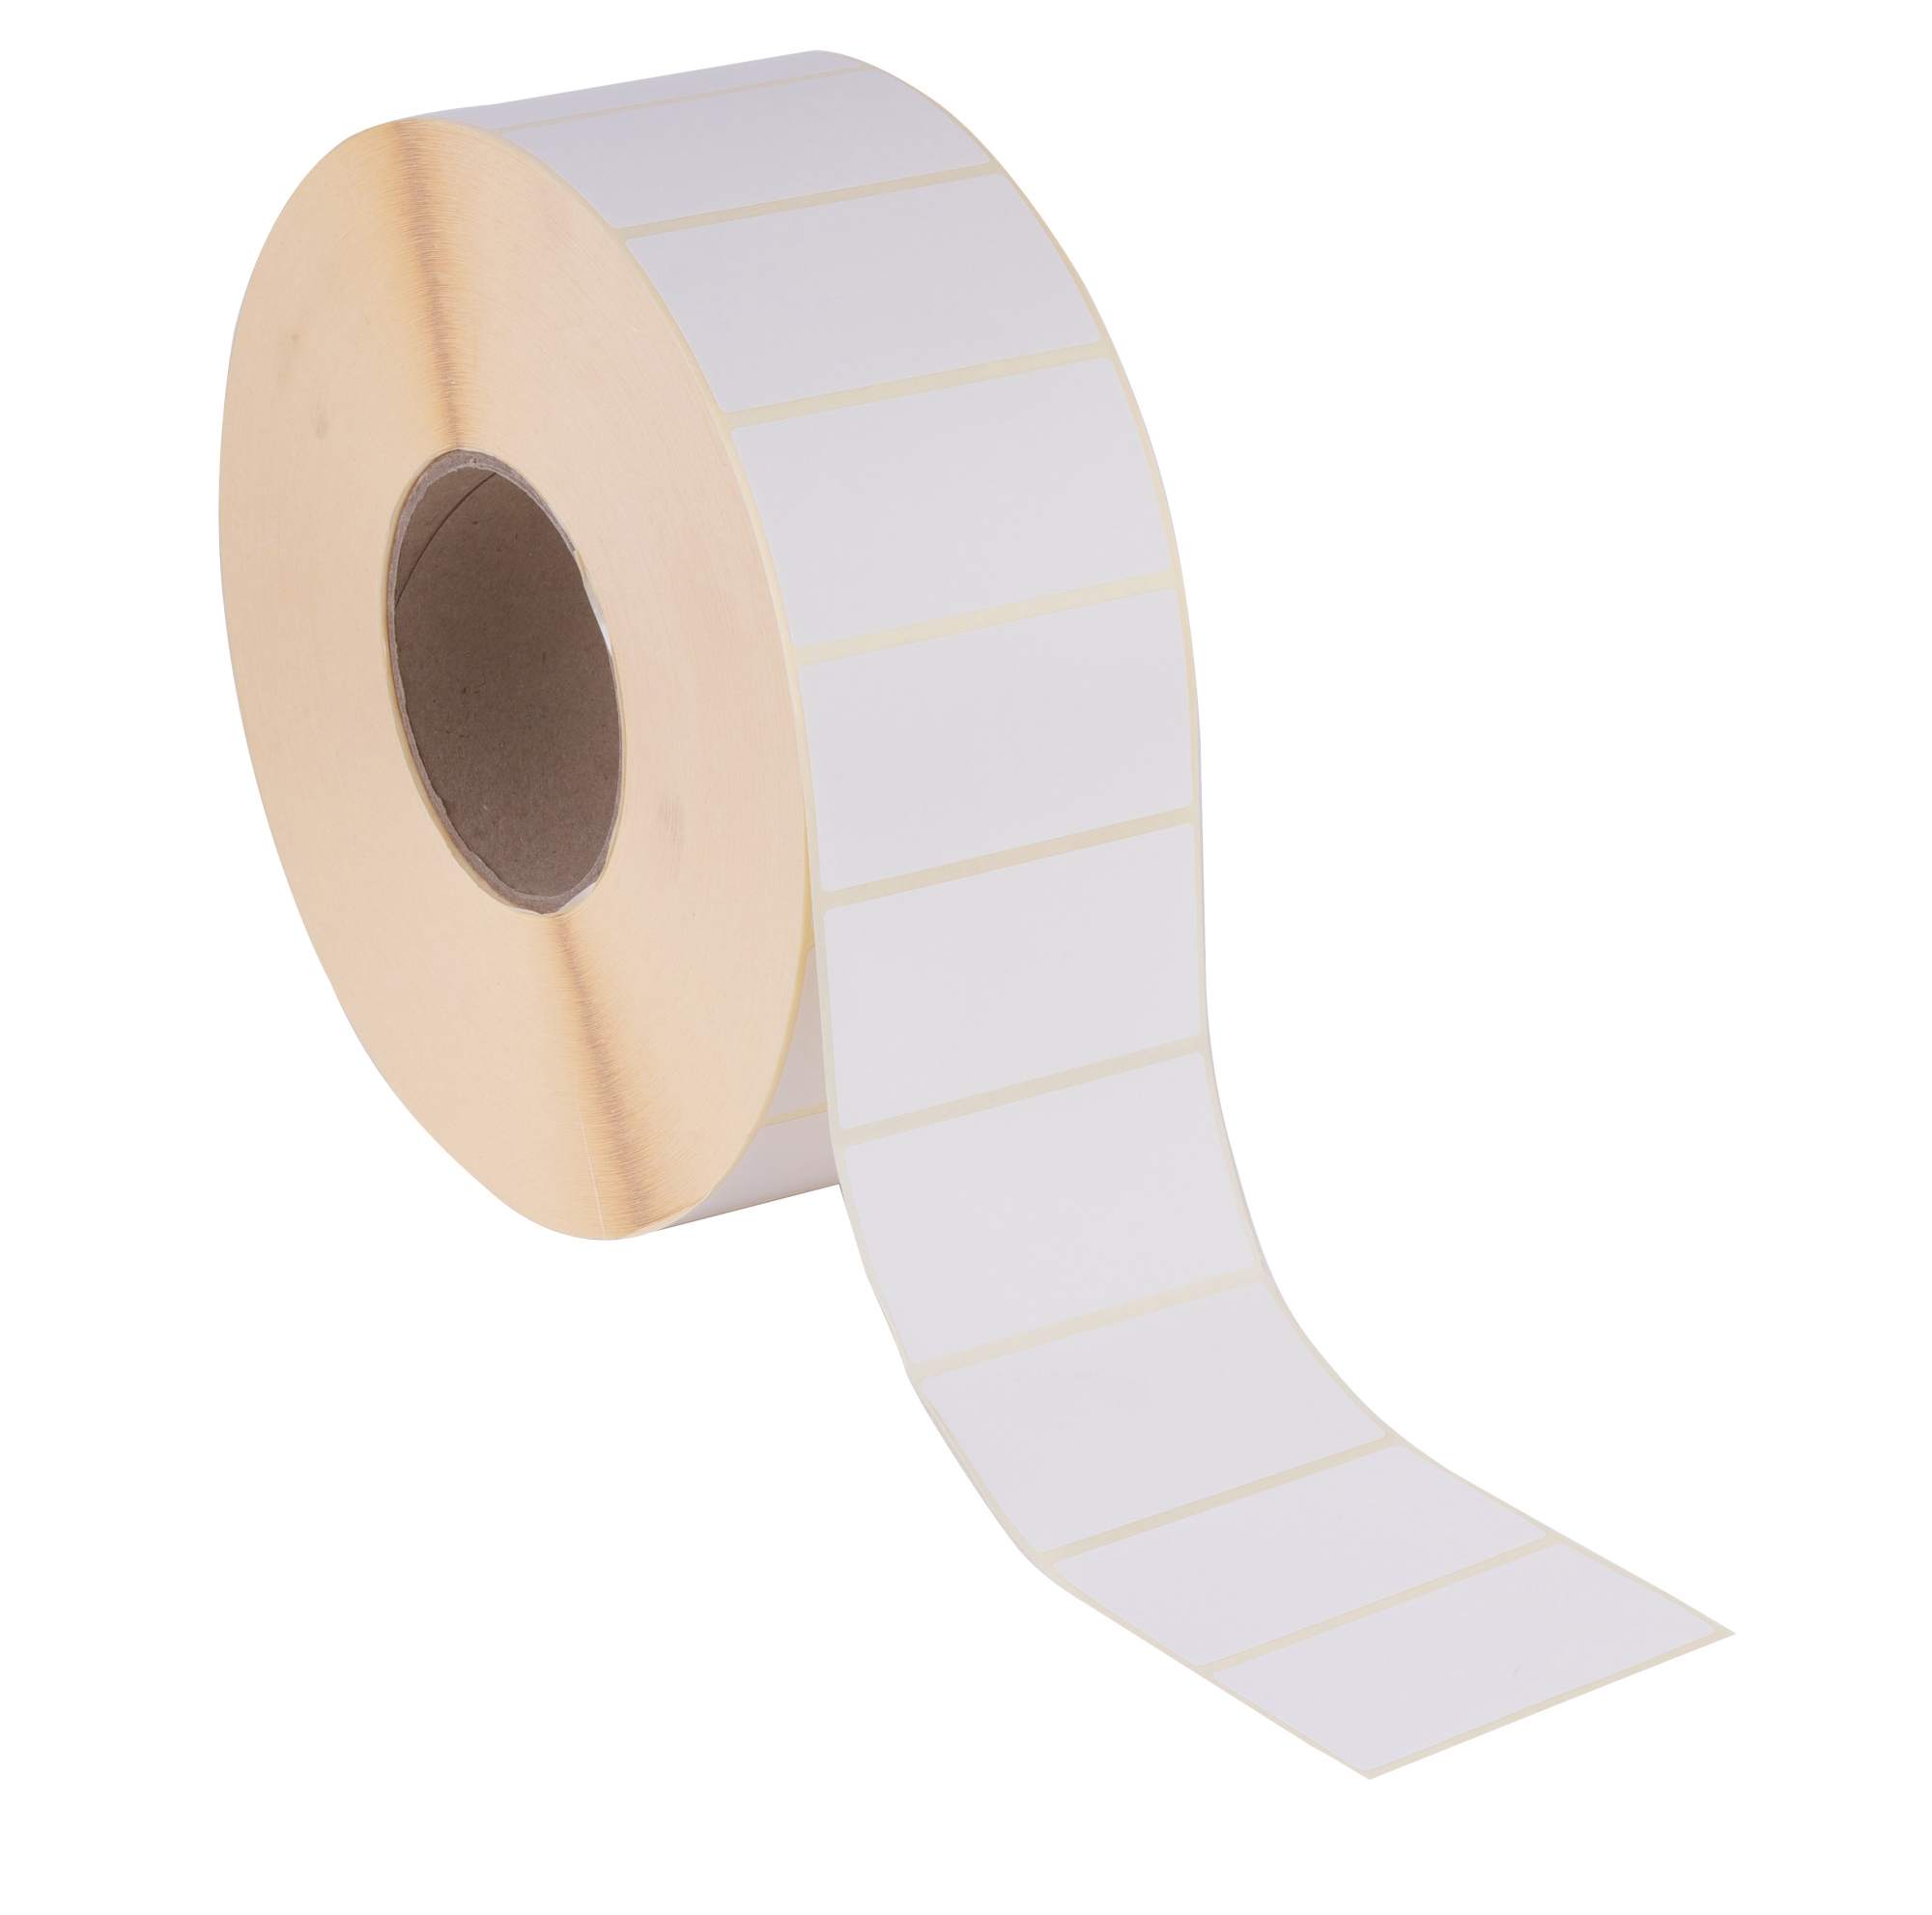 52 x 38mm Plain White Thermal Direct Printer Labels